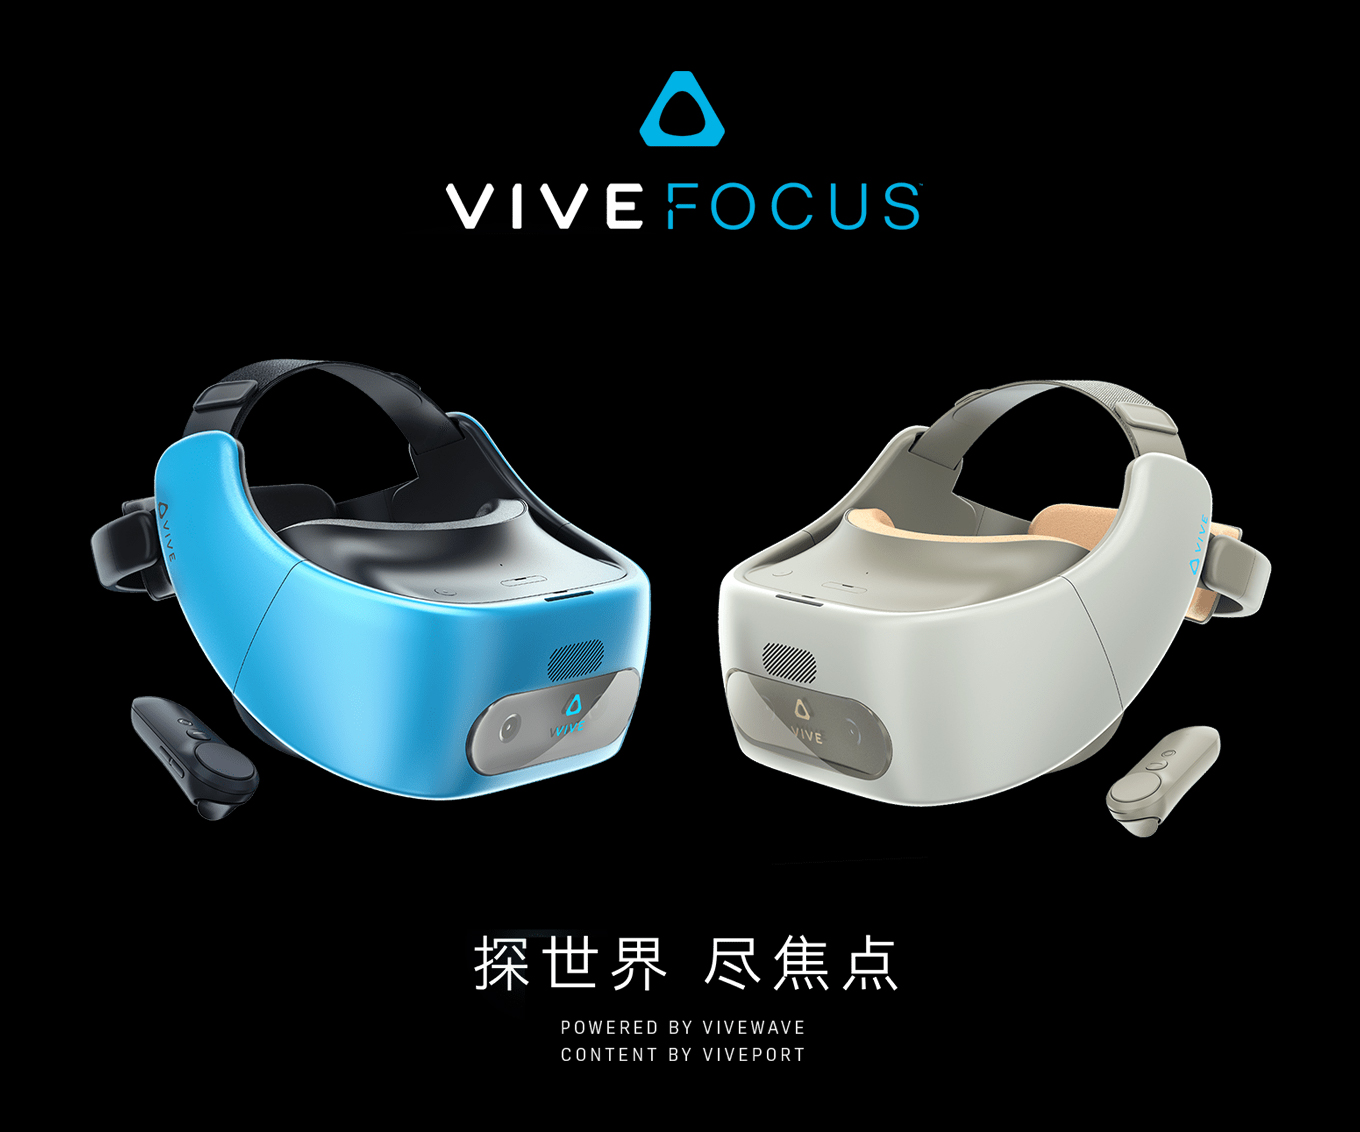 HTC Will Be Selling The Vive Focus For $600